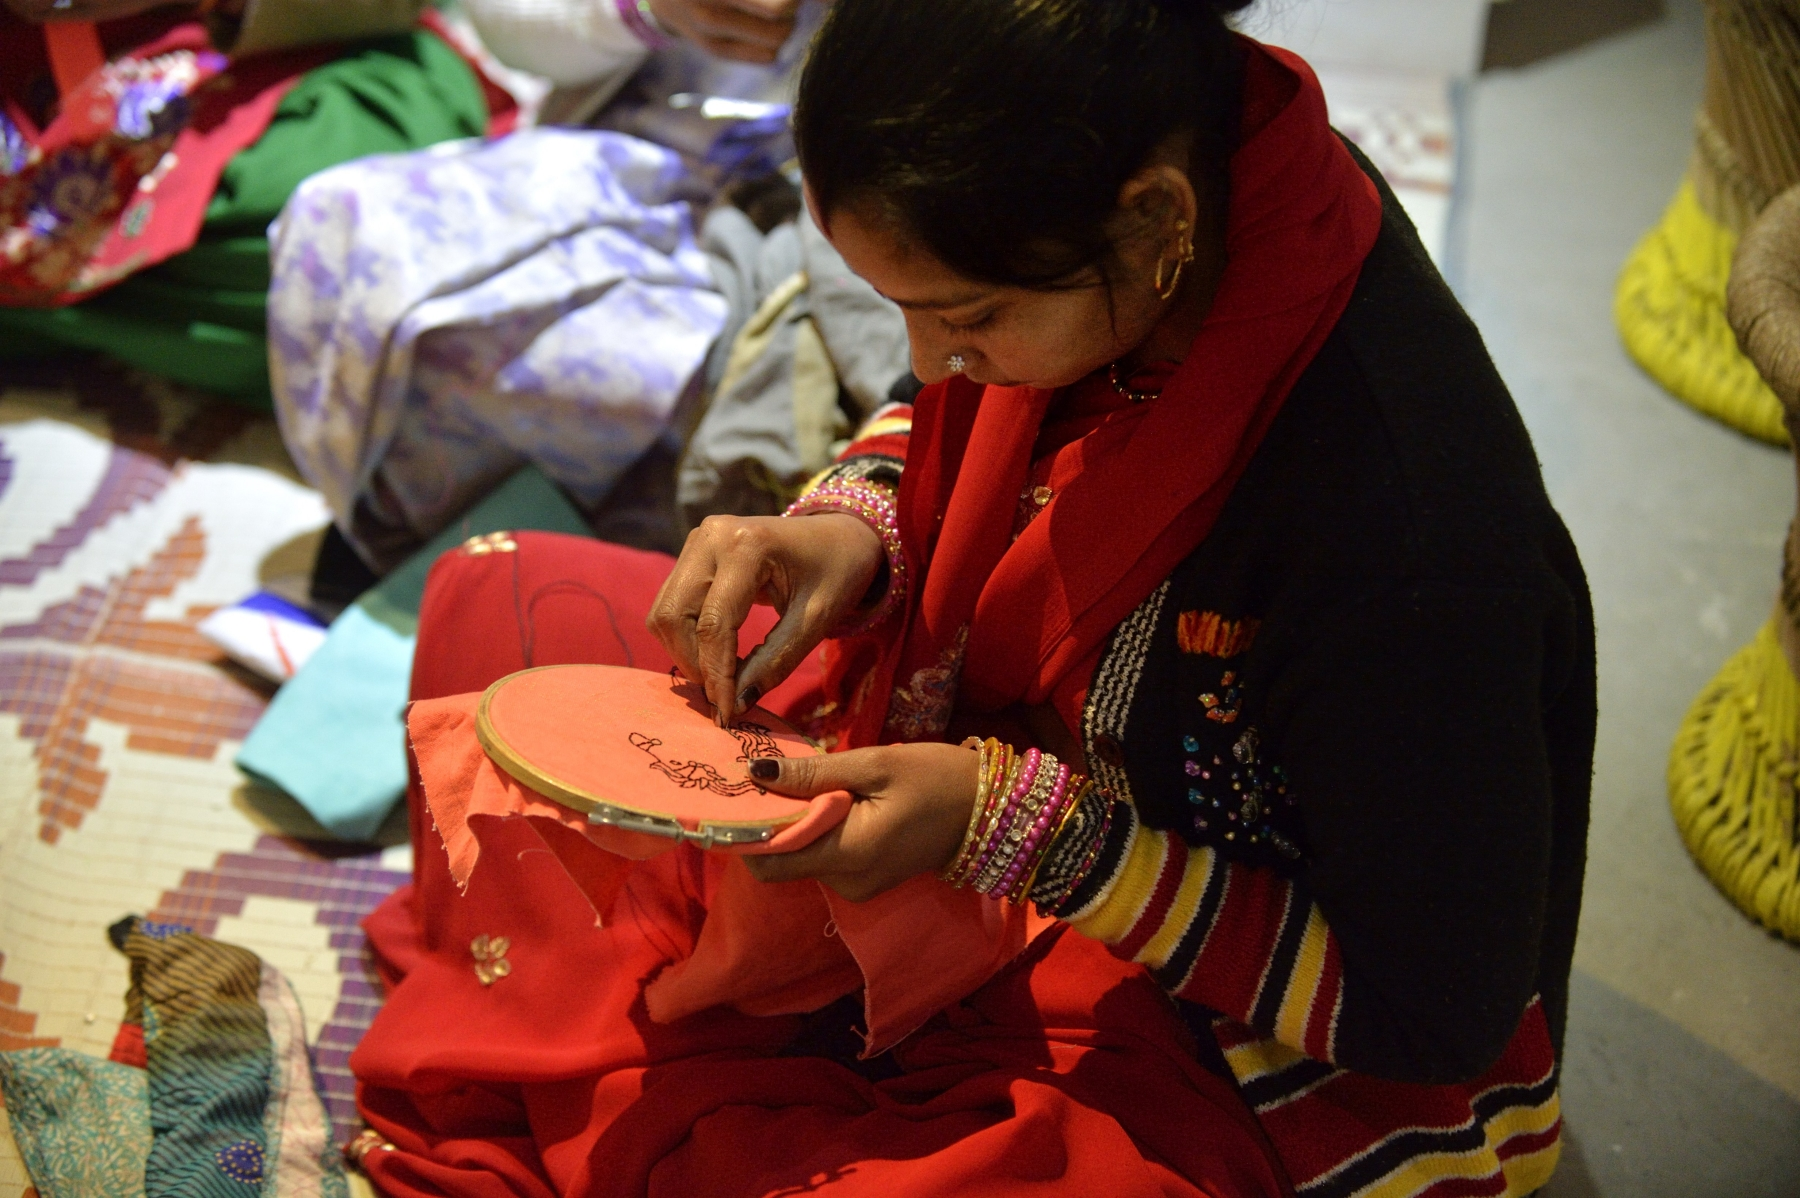 Through fair payment means, SEWA is ensuring that handiwork traditions are not lost.